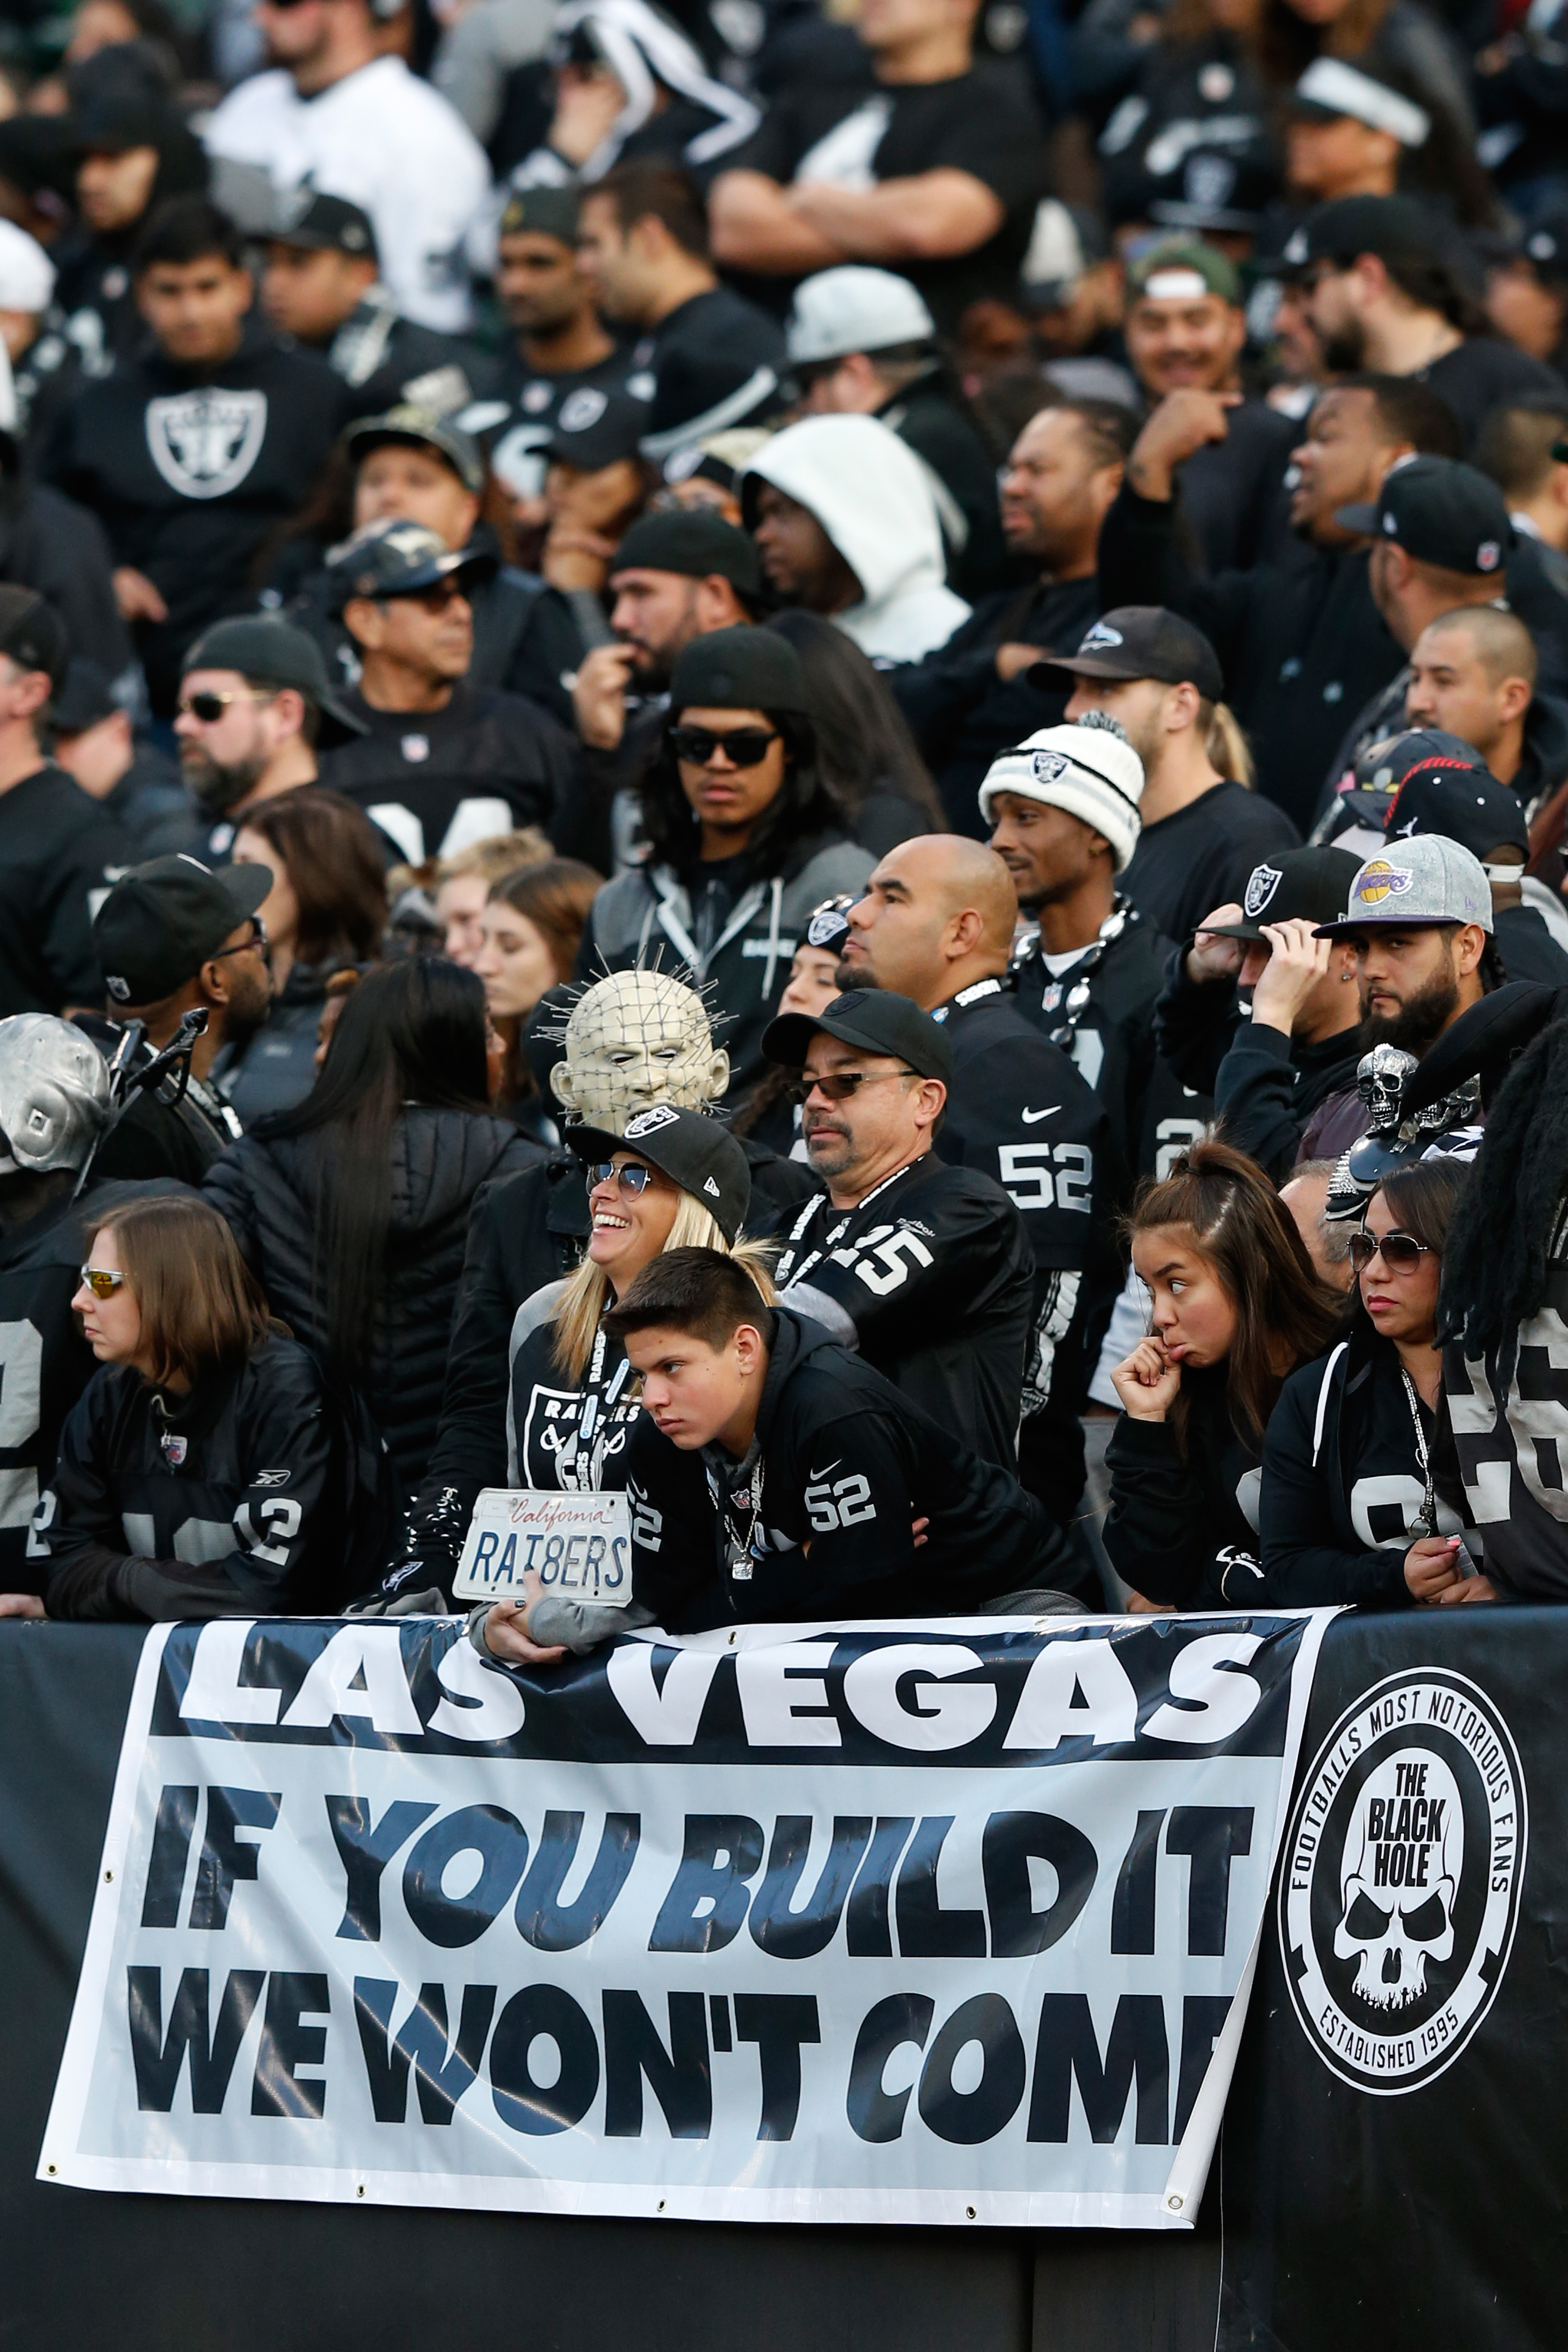 Oakland Raiders fans stand behind a sign referencing a potential move by the team to Las Vegas during their NFL game against the Carolina Panthers on November 27, 2016 in Oakland, California.  (Photo by Lachlan Cunningham/Getty Images)